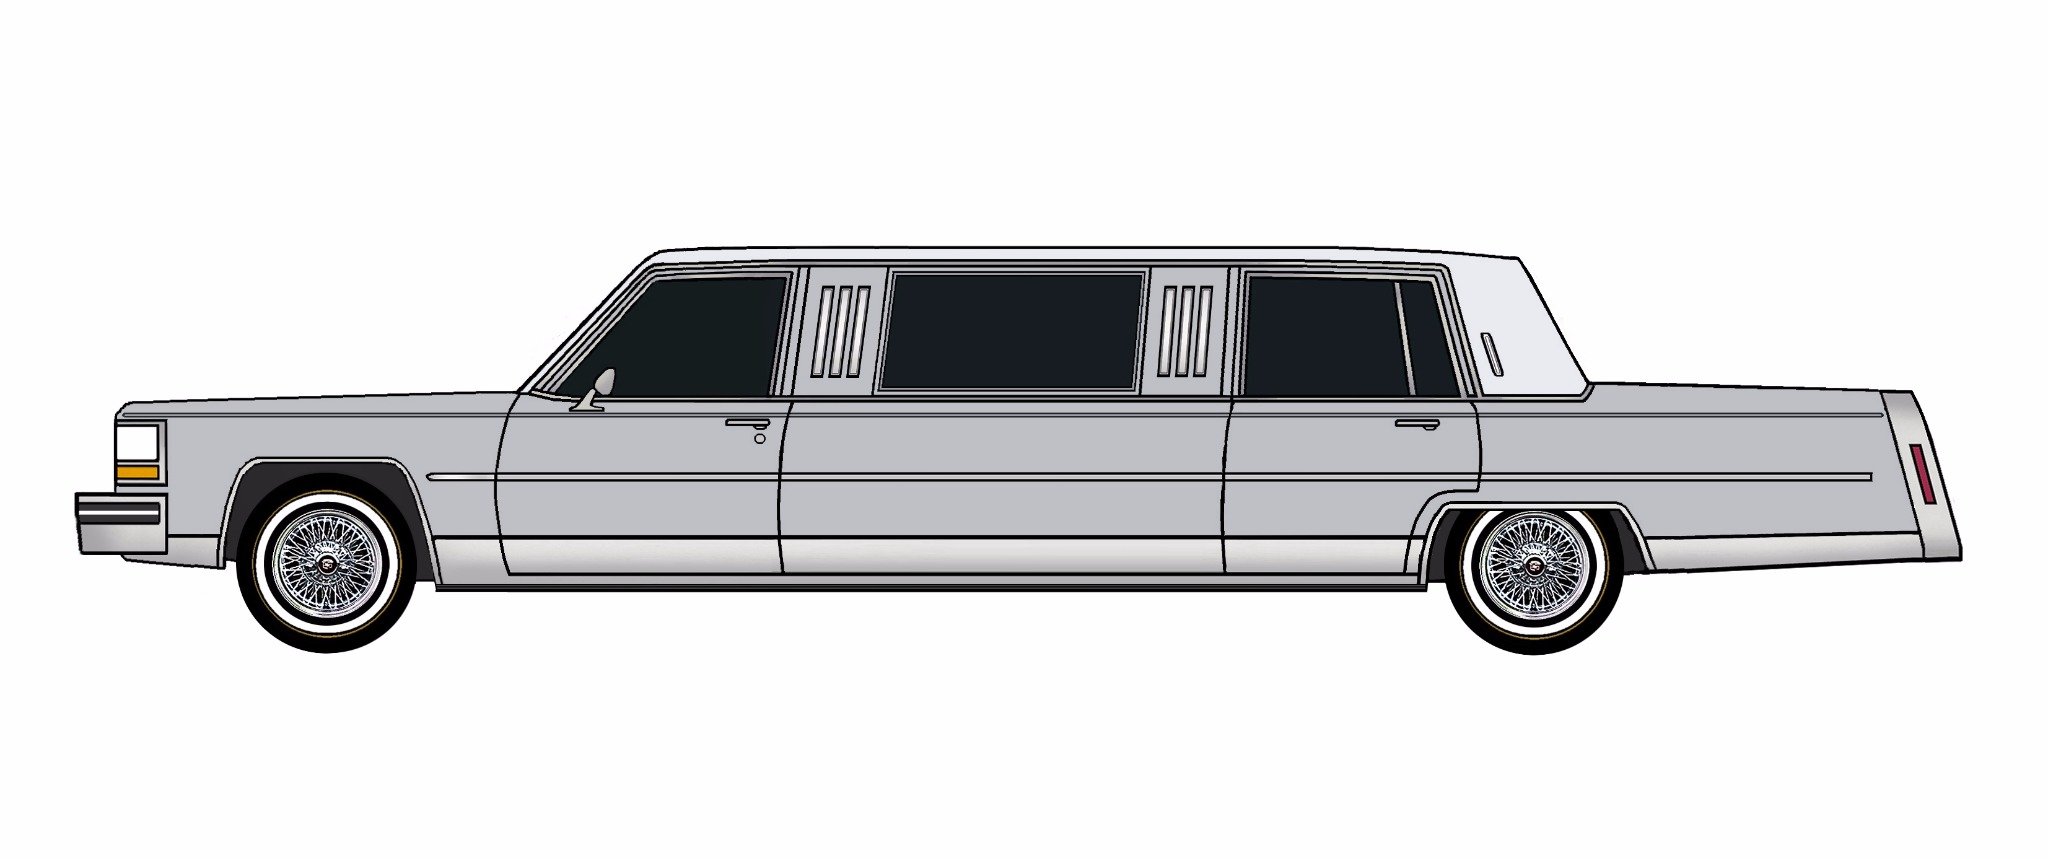 1984 Cadillac Fleetwood Brougham Limo LILAC GREY